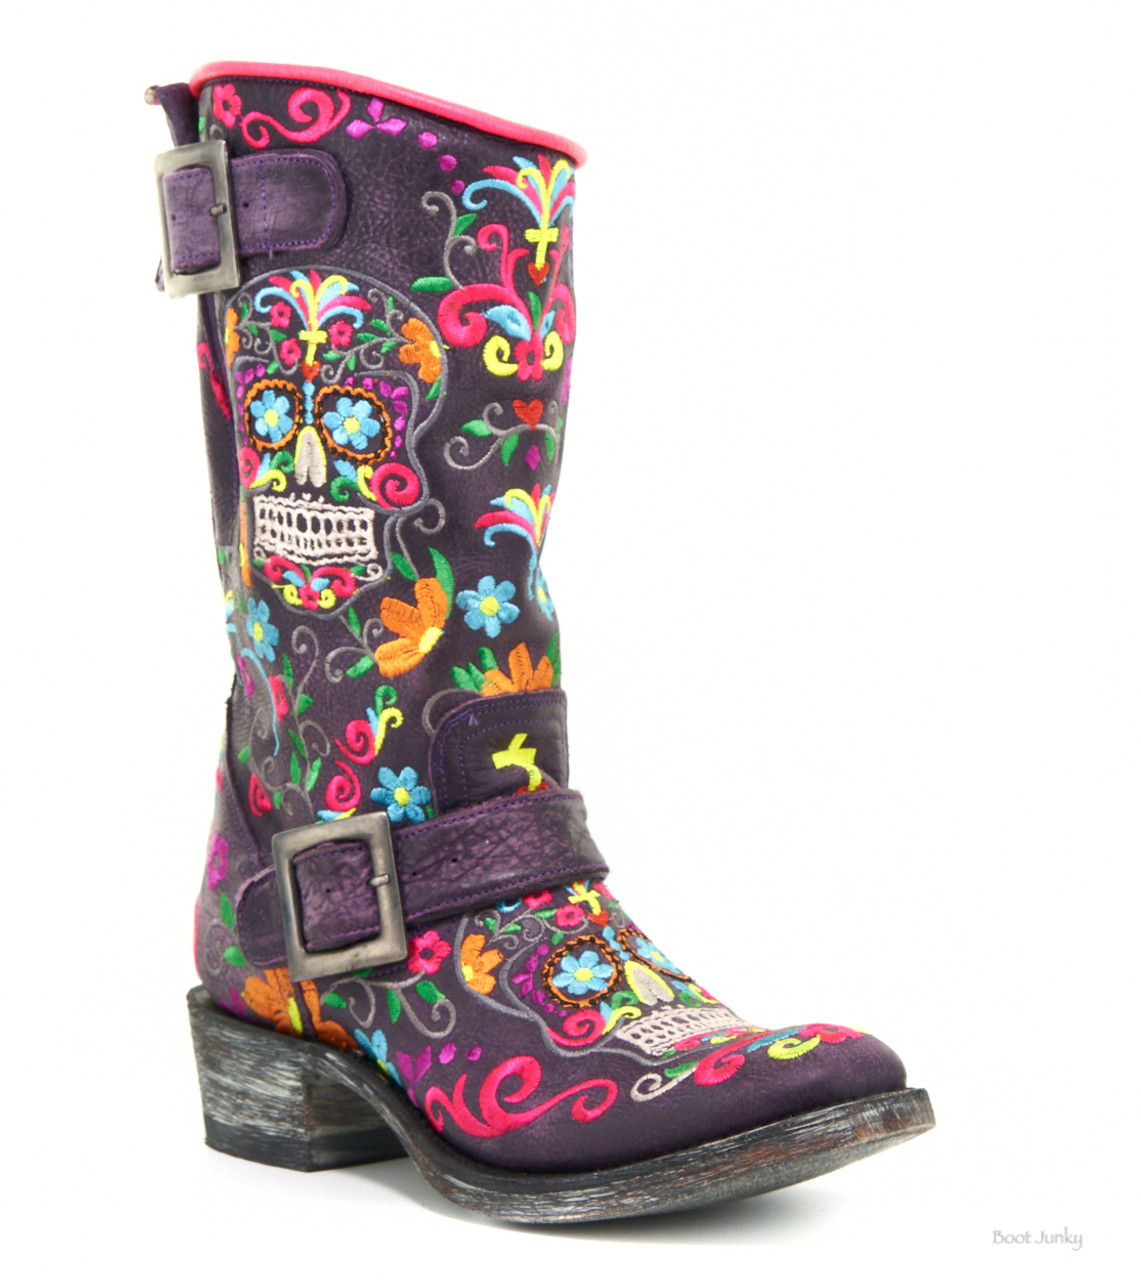 b4489e3852 L1385-5 Old Gringo Sugar Skull Klak Biker Violet Purple Multi Neon Leather  Biker Boots